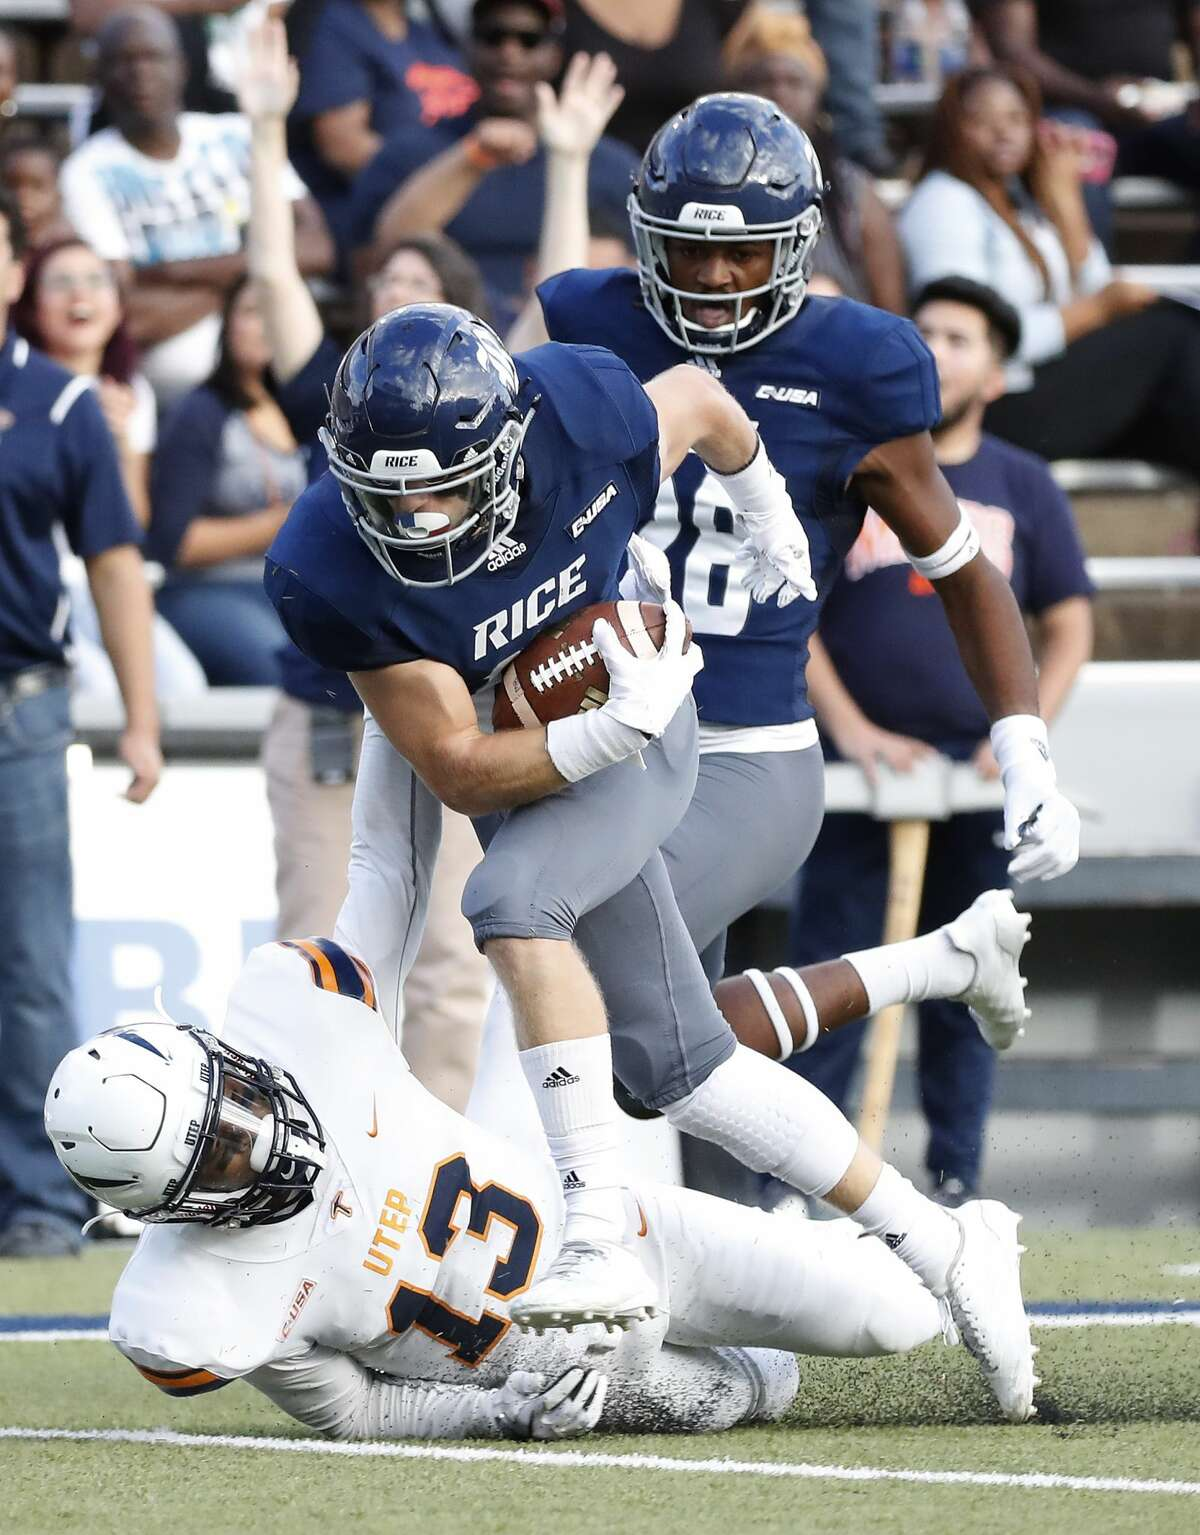 Rice Owls wide receiver Austin Trammell (10) catches a pass that he ran in for a touchdown during the fourth quarter of a college football game at Rice Stadium, Saturday, Nov. 3, 2018, in Houston.